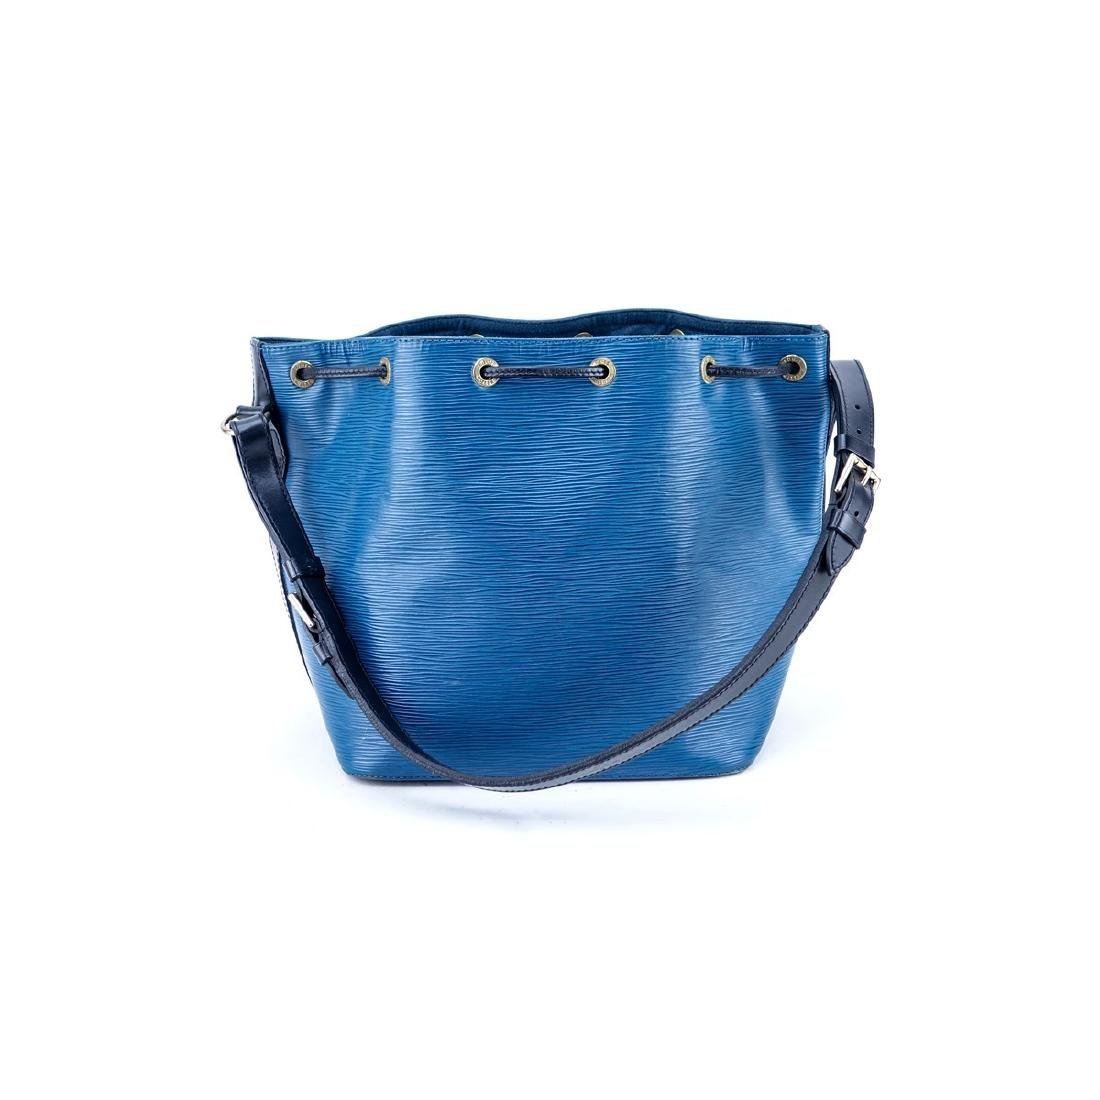 Louis Vuitton Blue/Black Epi Leather Noe Bicolor - 3